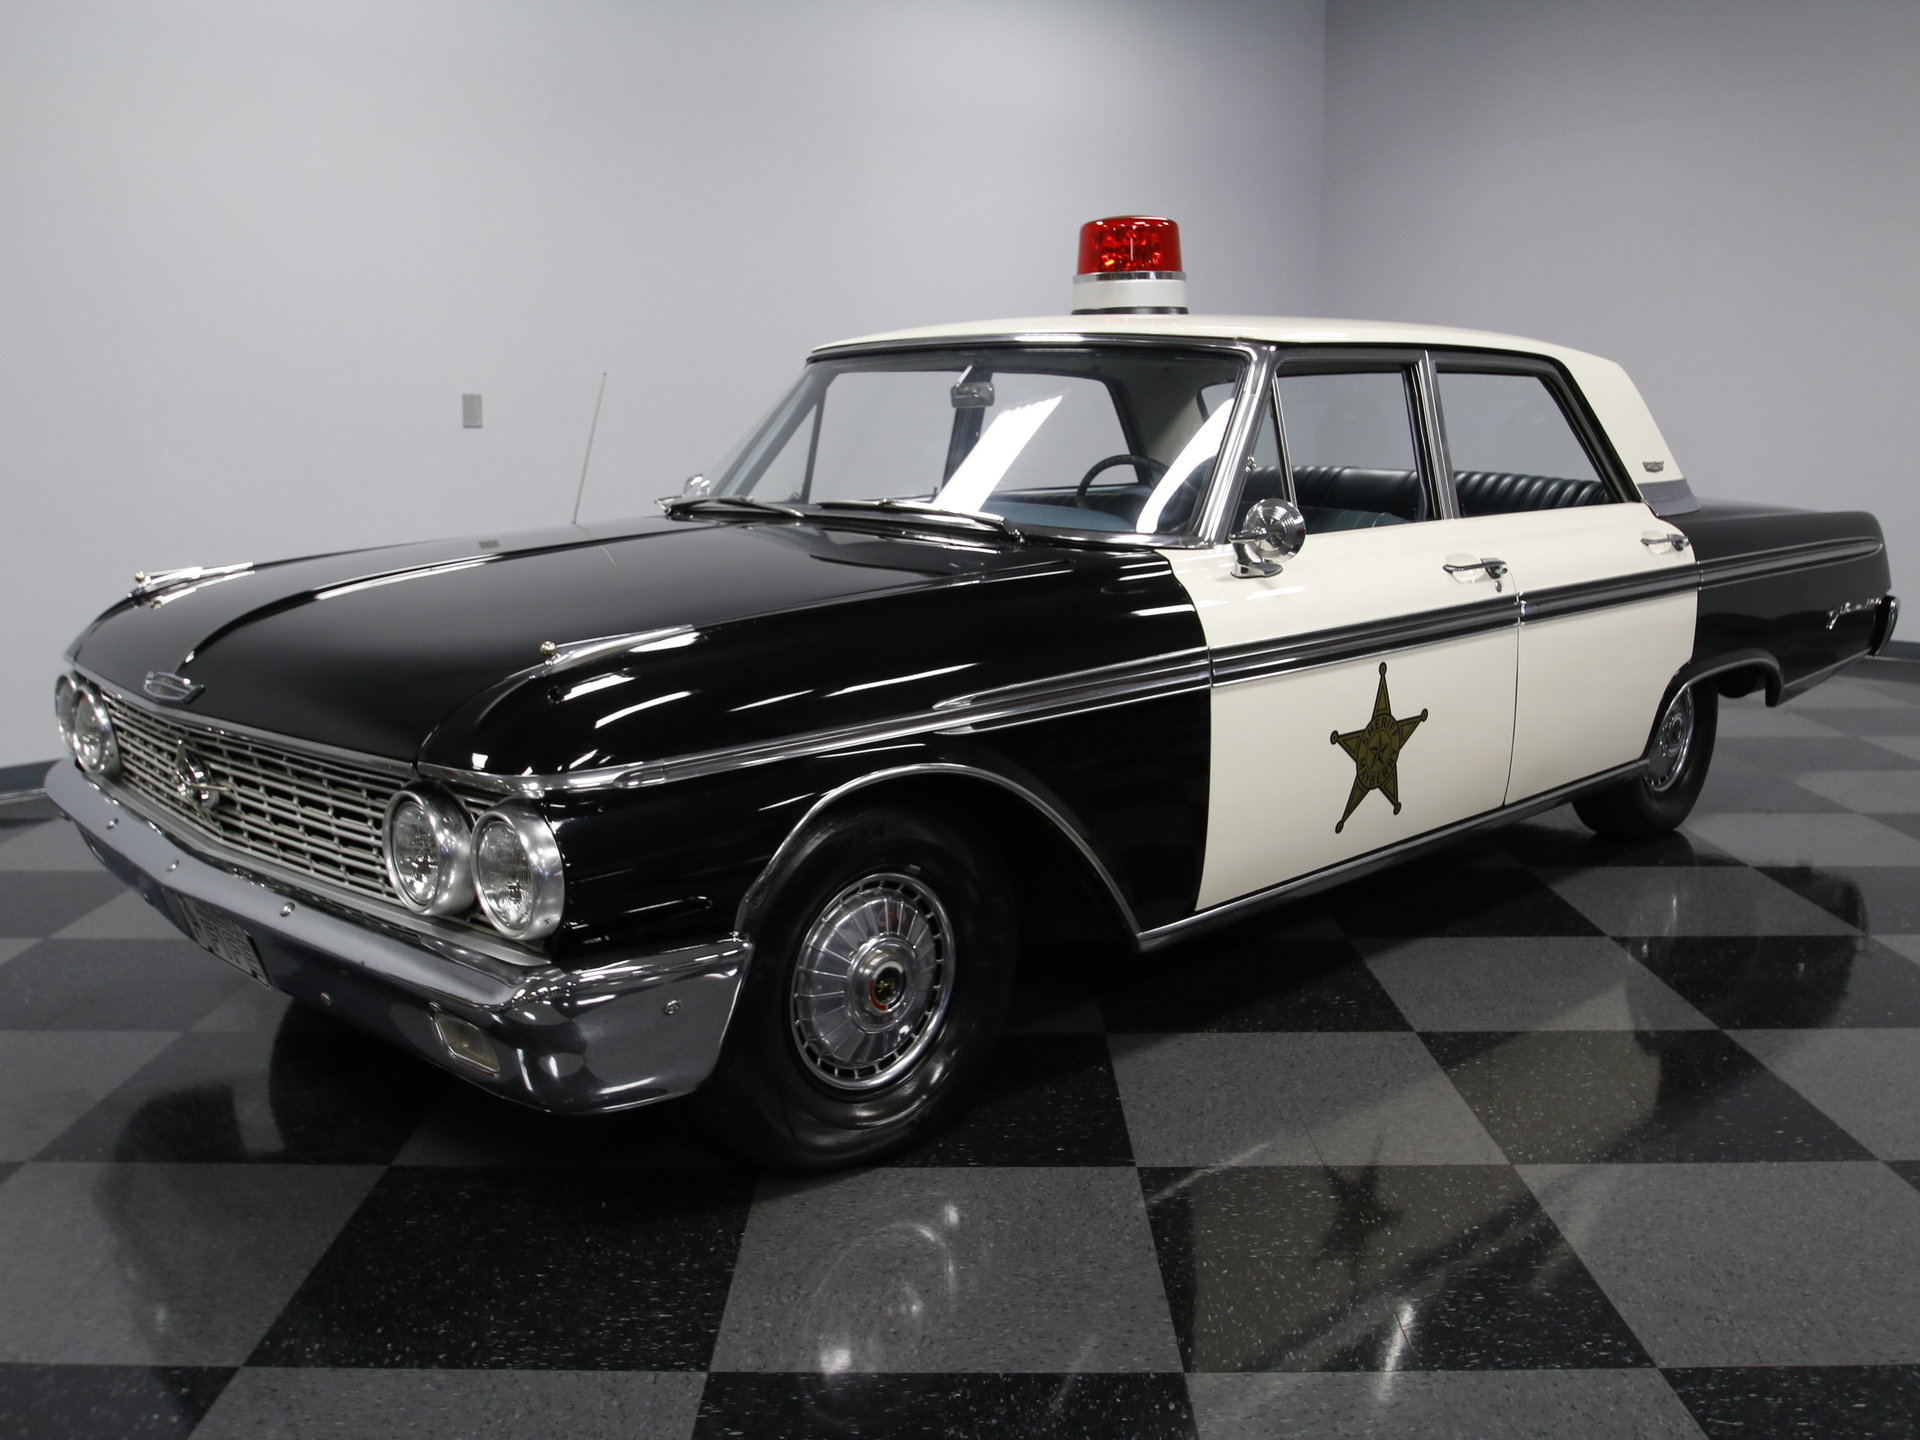 1962 Ford Galaxie Streetside Classics The Nations Trusted 1970 Police Car Show More Photos